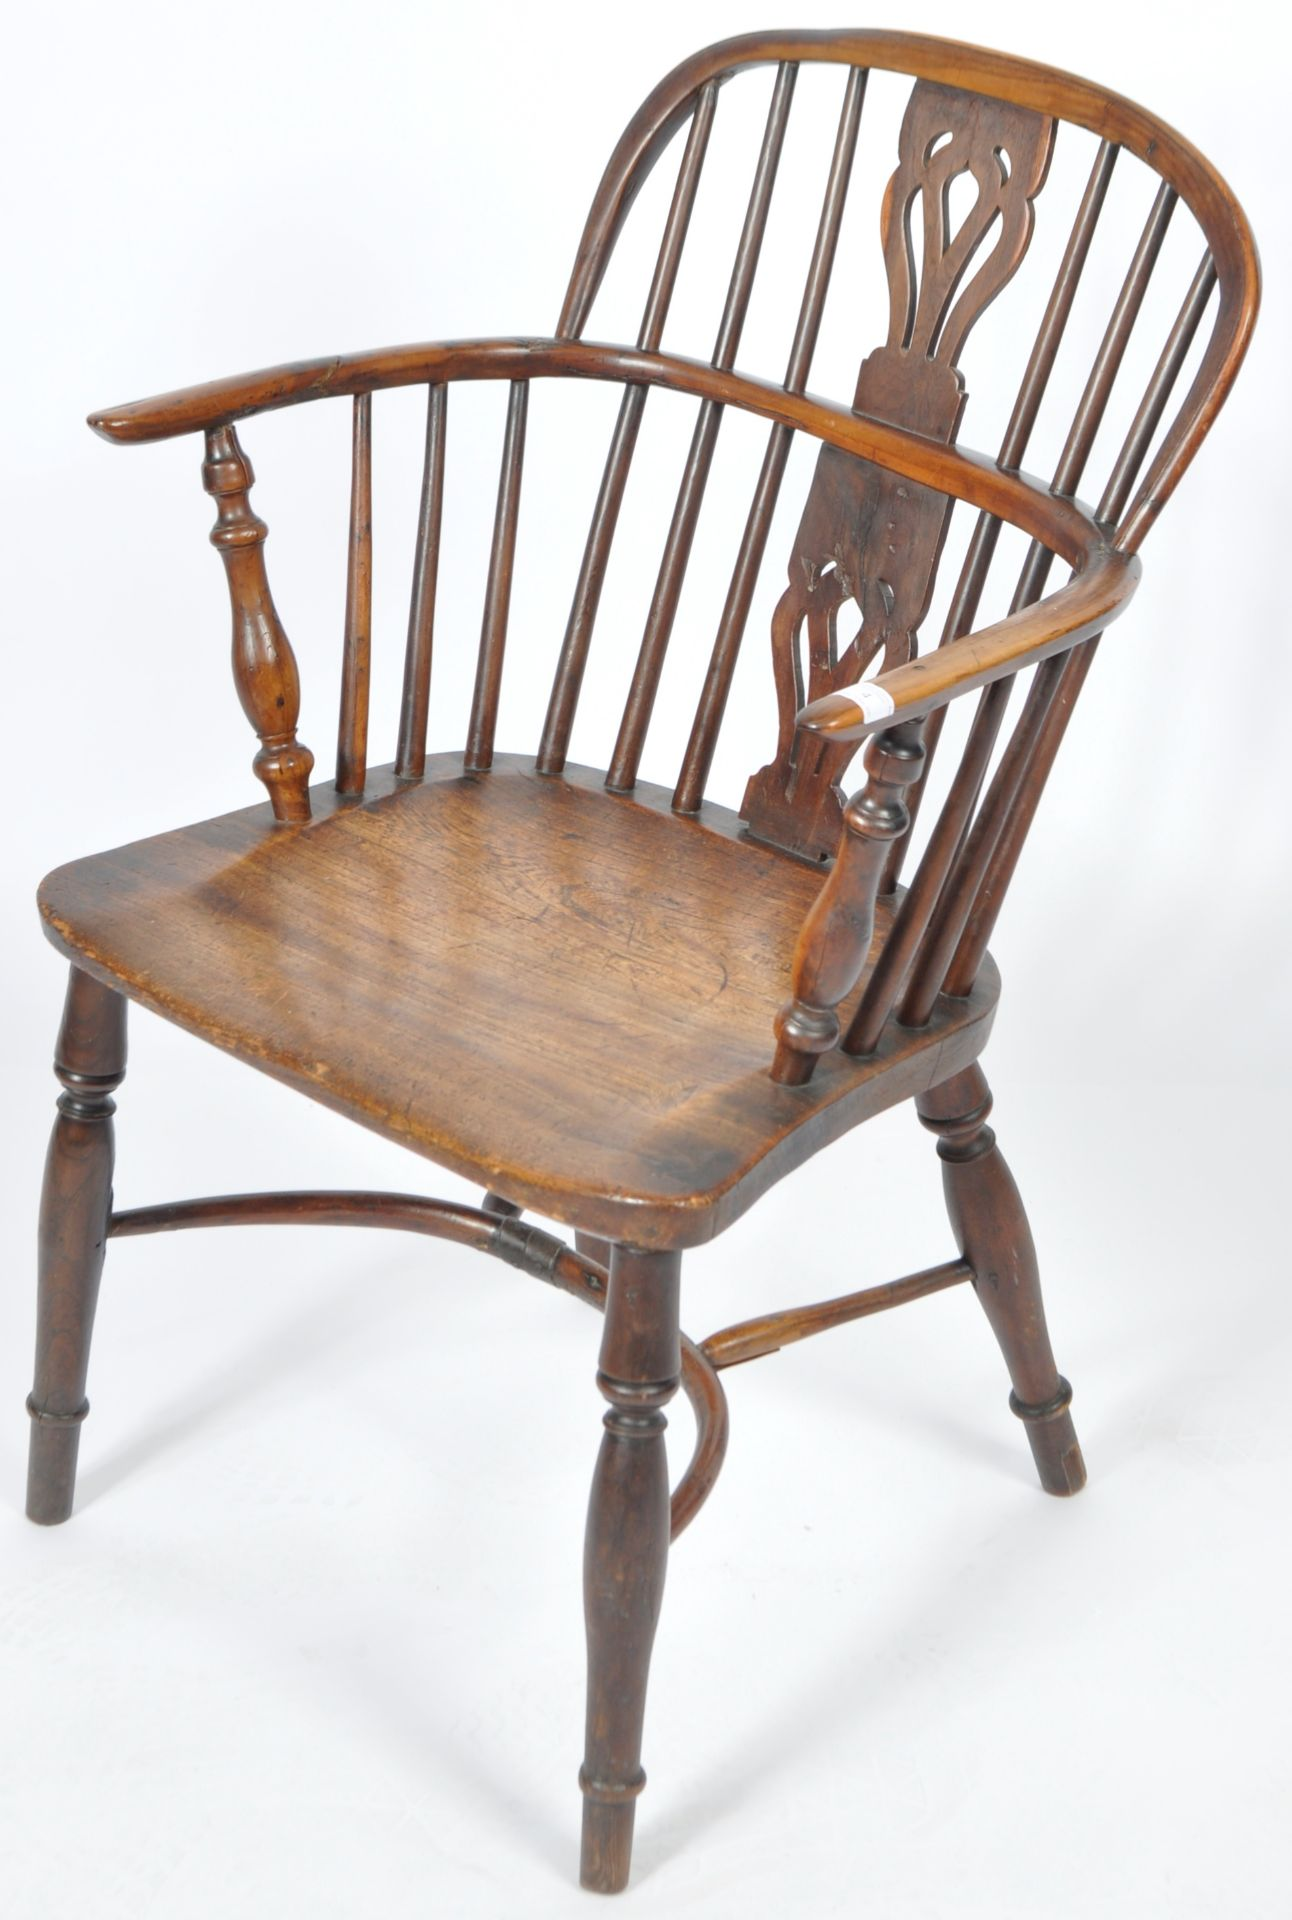 ANTIQUE GEORGIAN YEW AND ELM CRINOLINE WINDSOR ARMCHAIR - Image 2 of 9